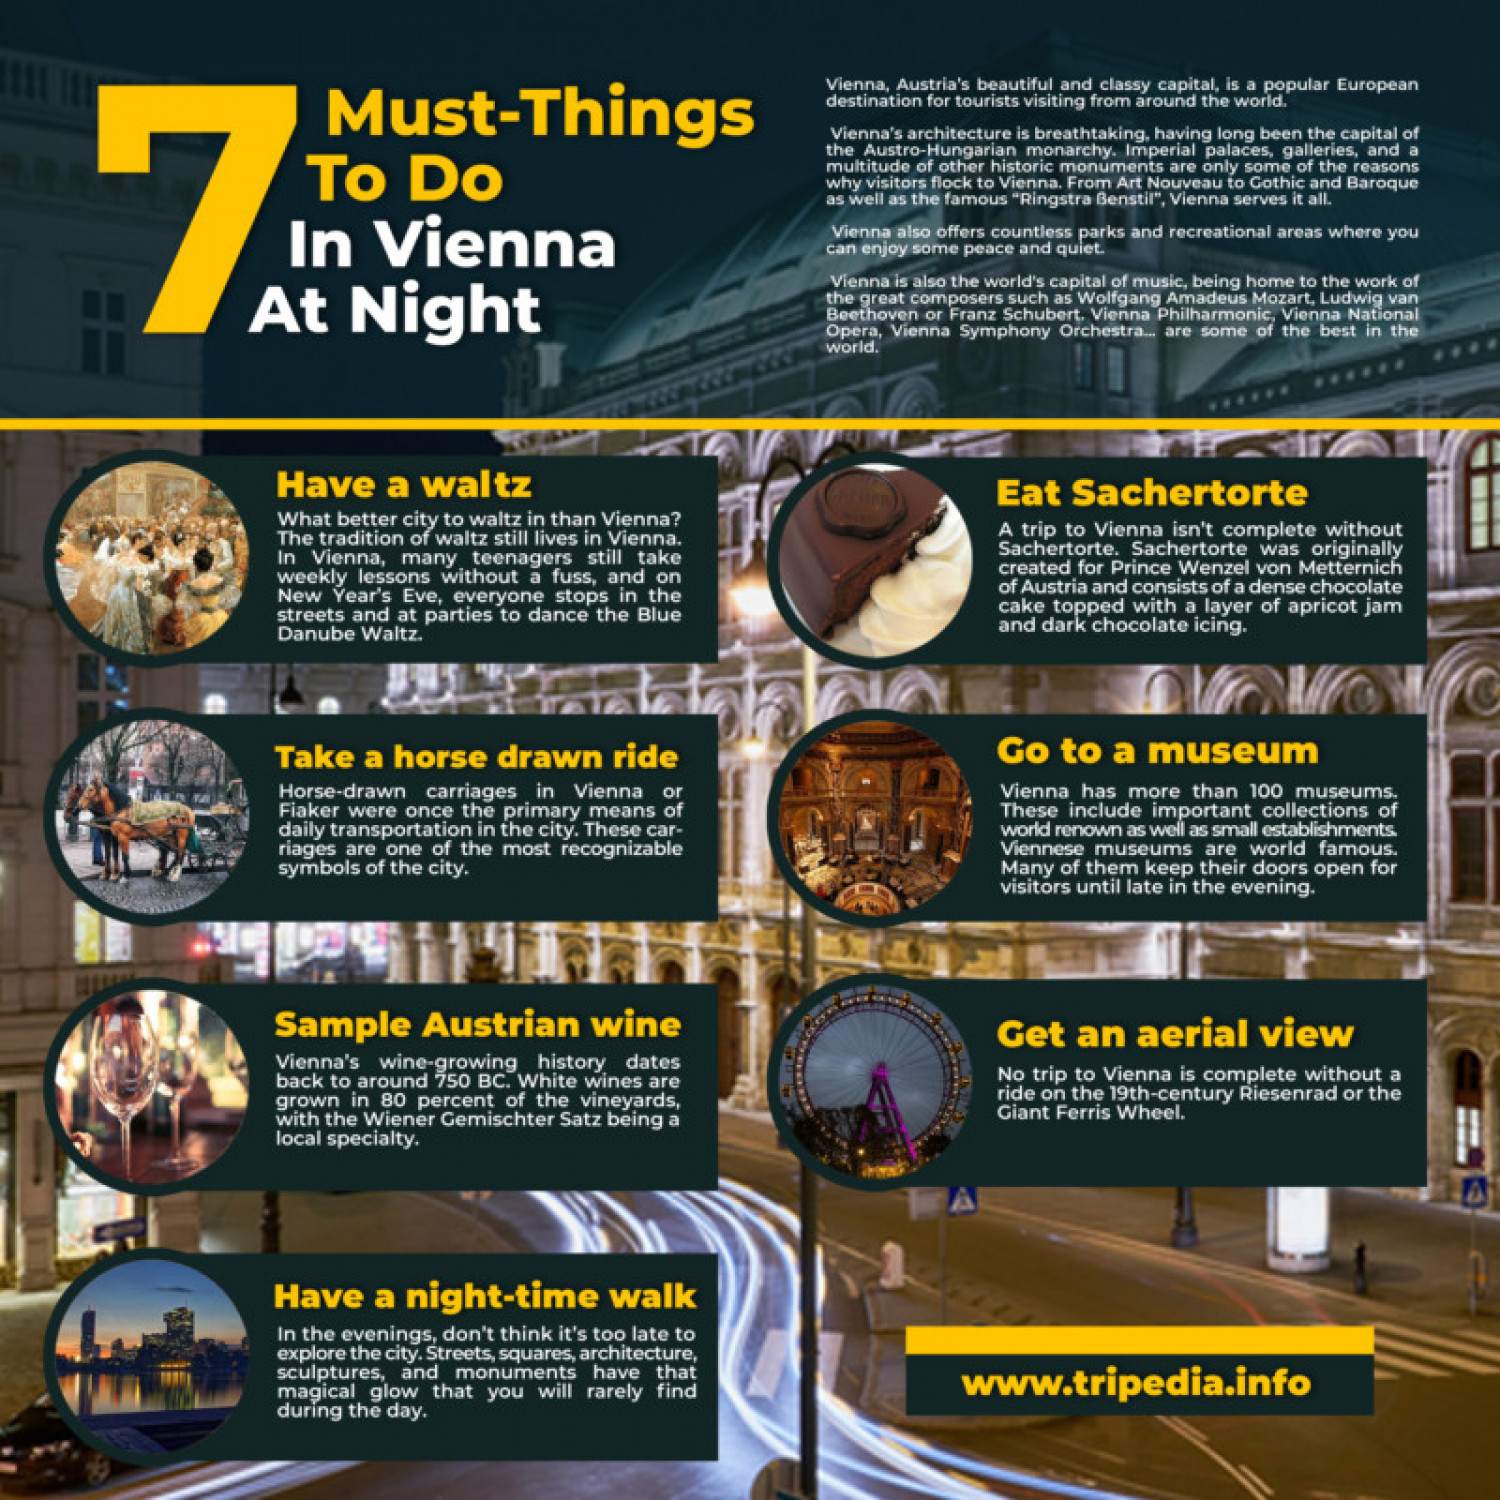 7 Must-Things To Do In Vienna At Night Infographic